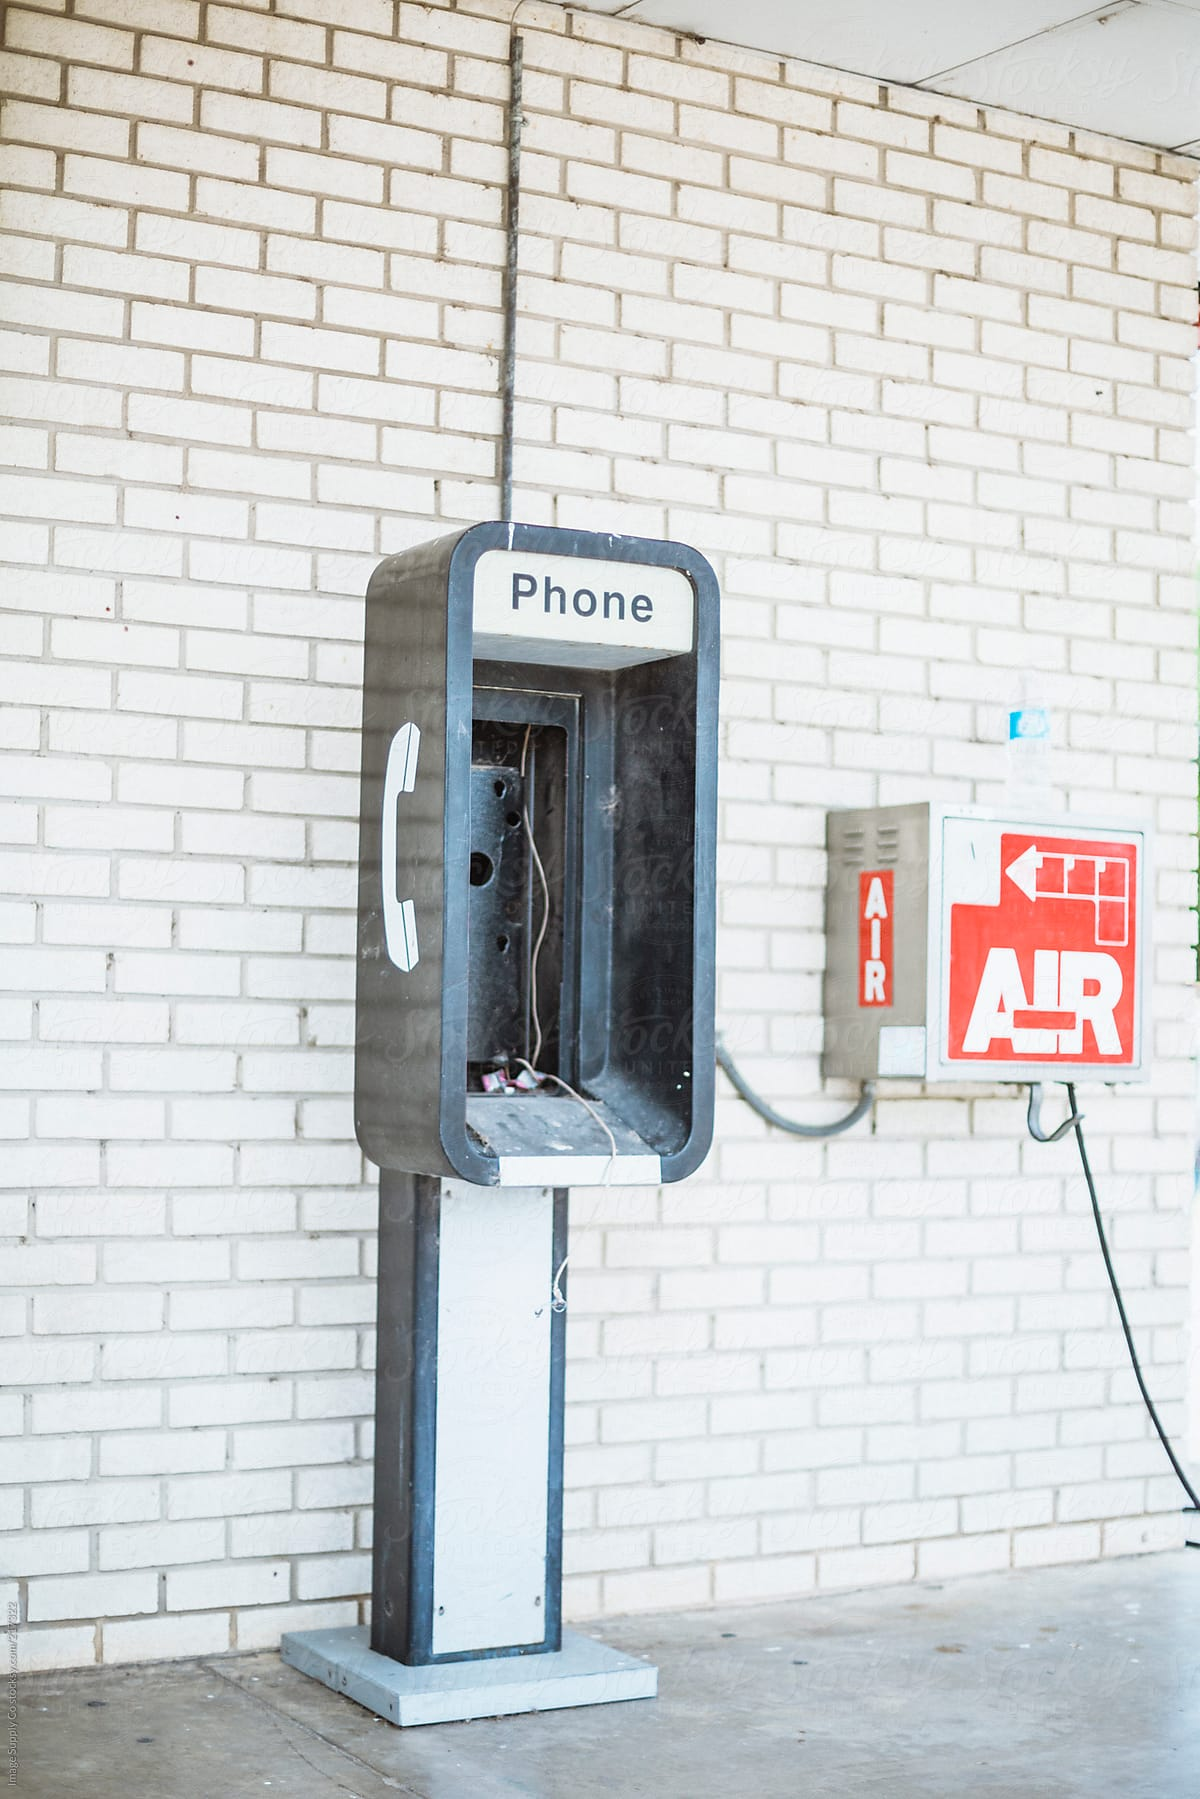 Stock Photo - Broken Pay Phone Outside